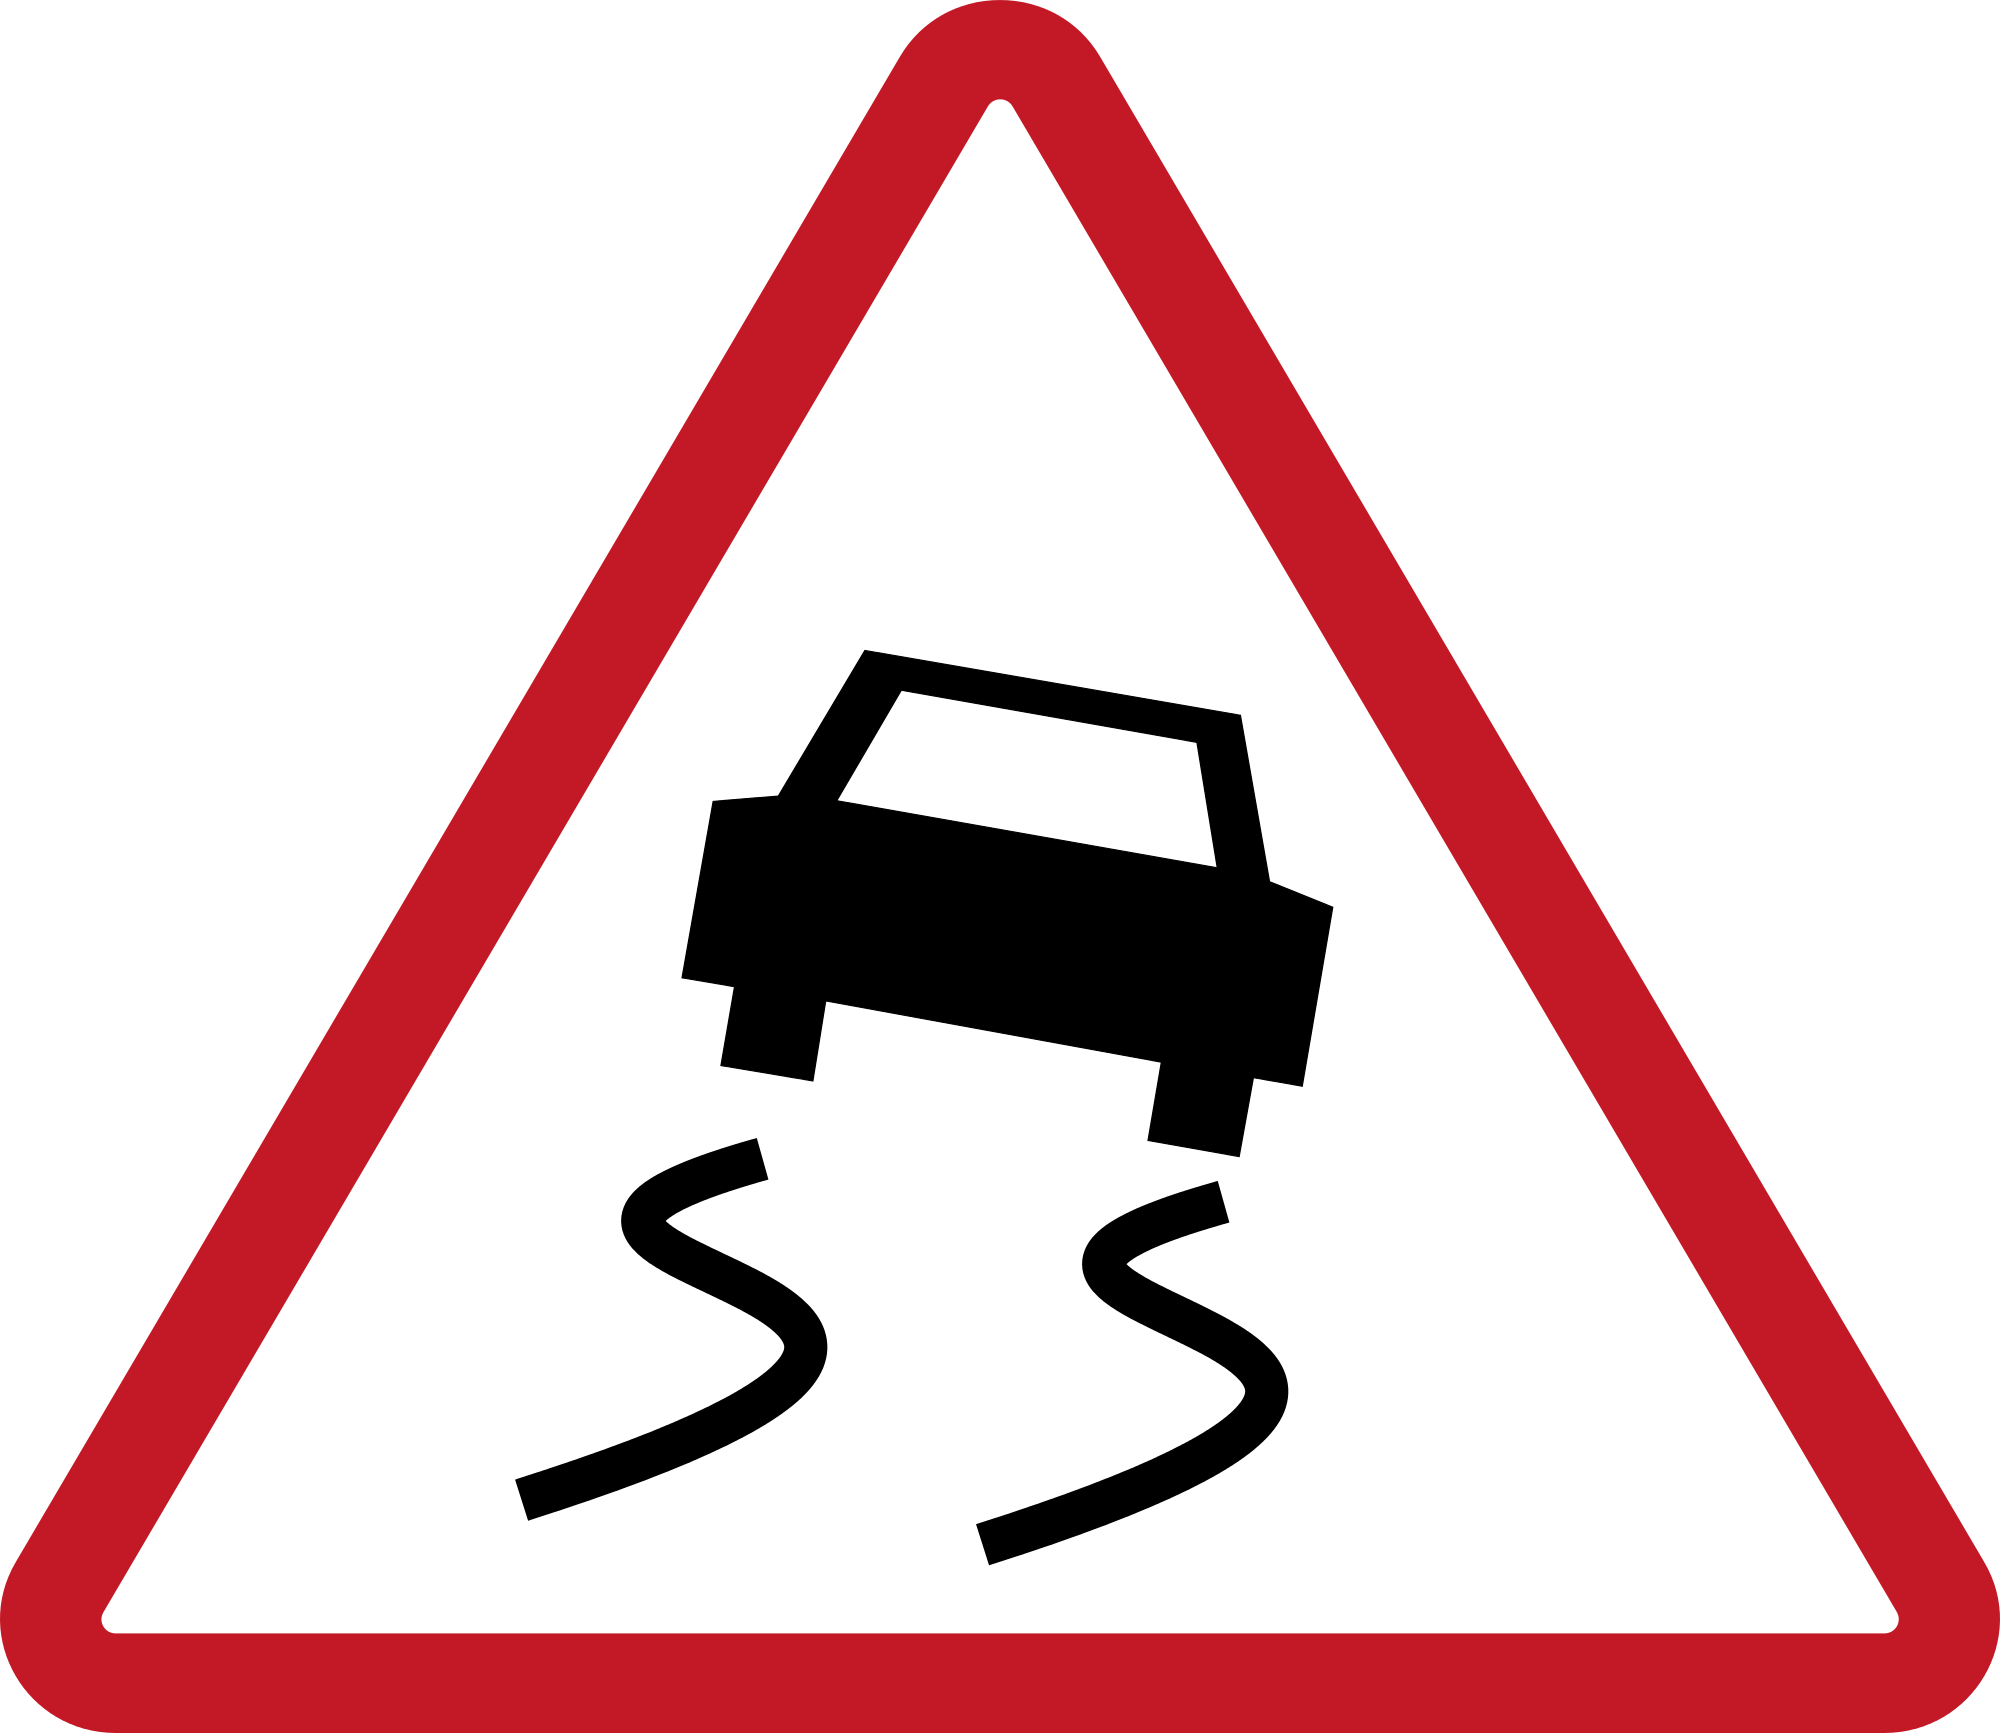 Clipart road road marking. File philippines sign w